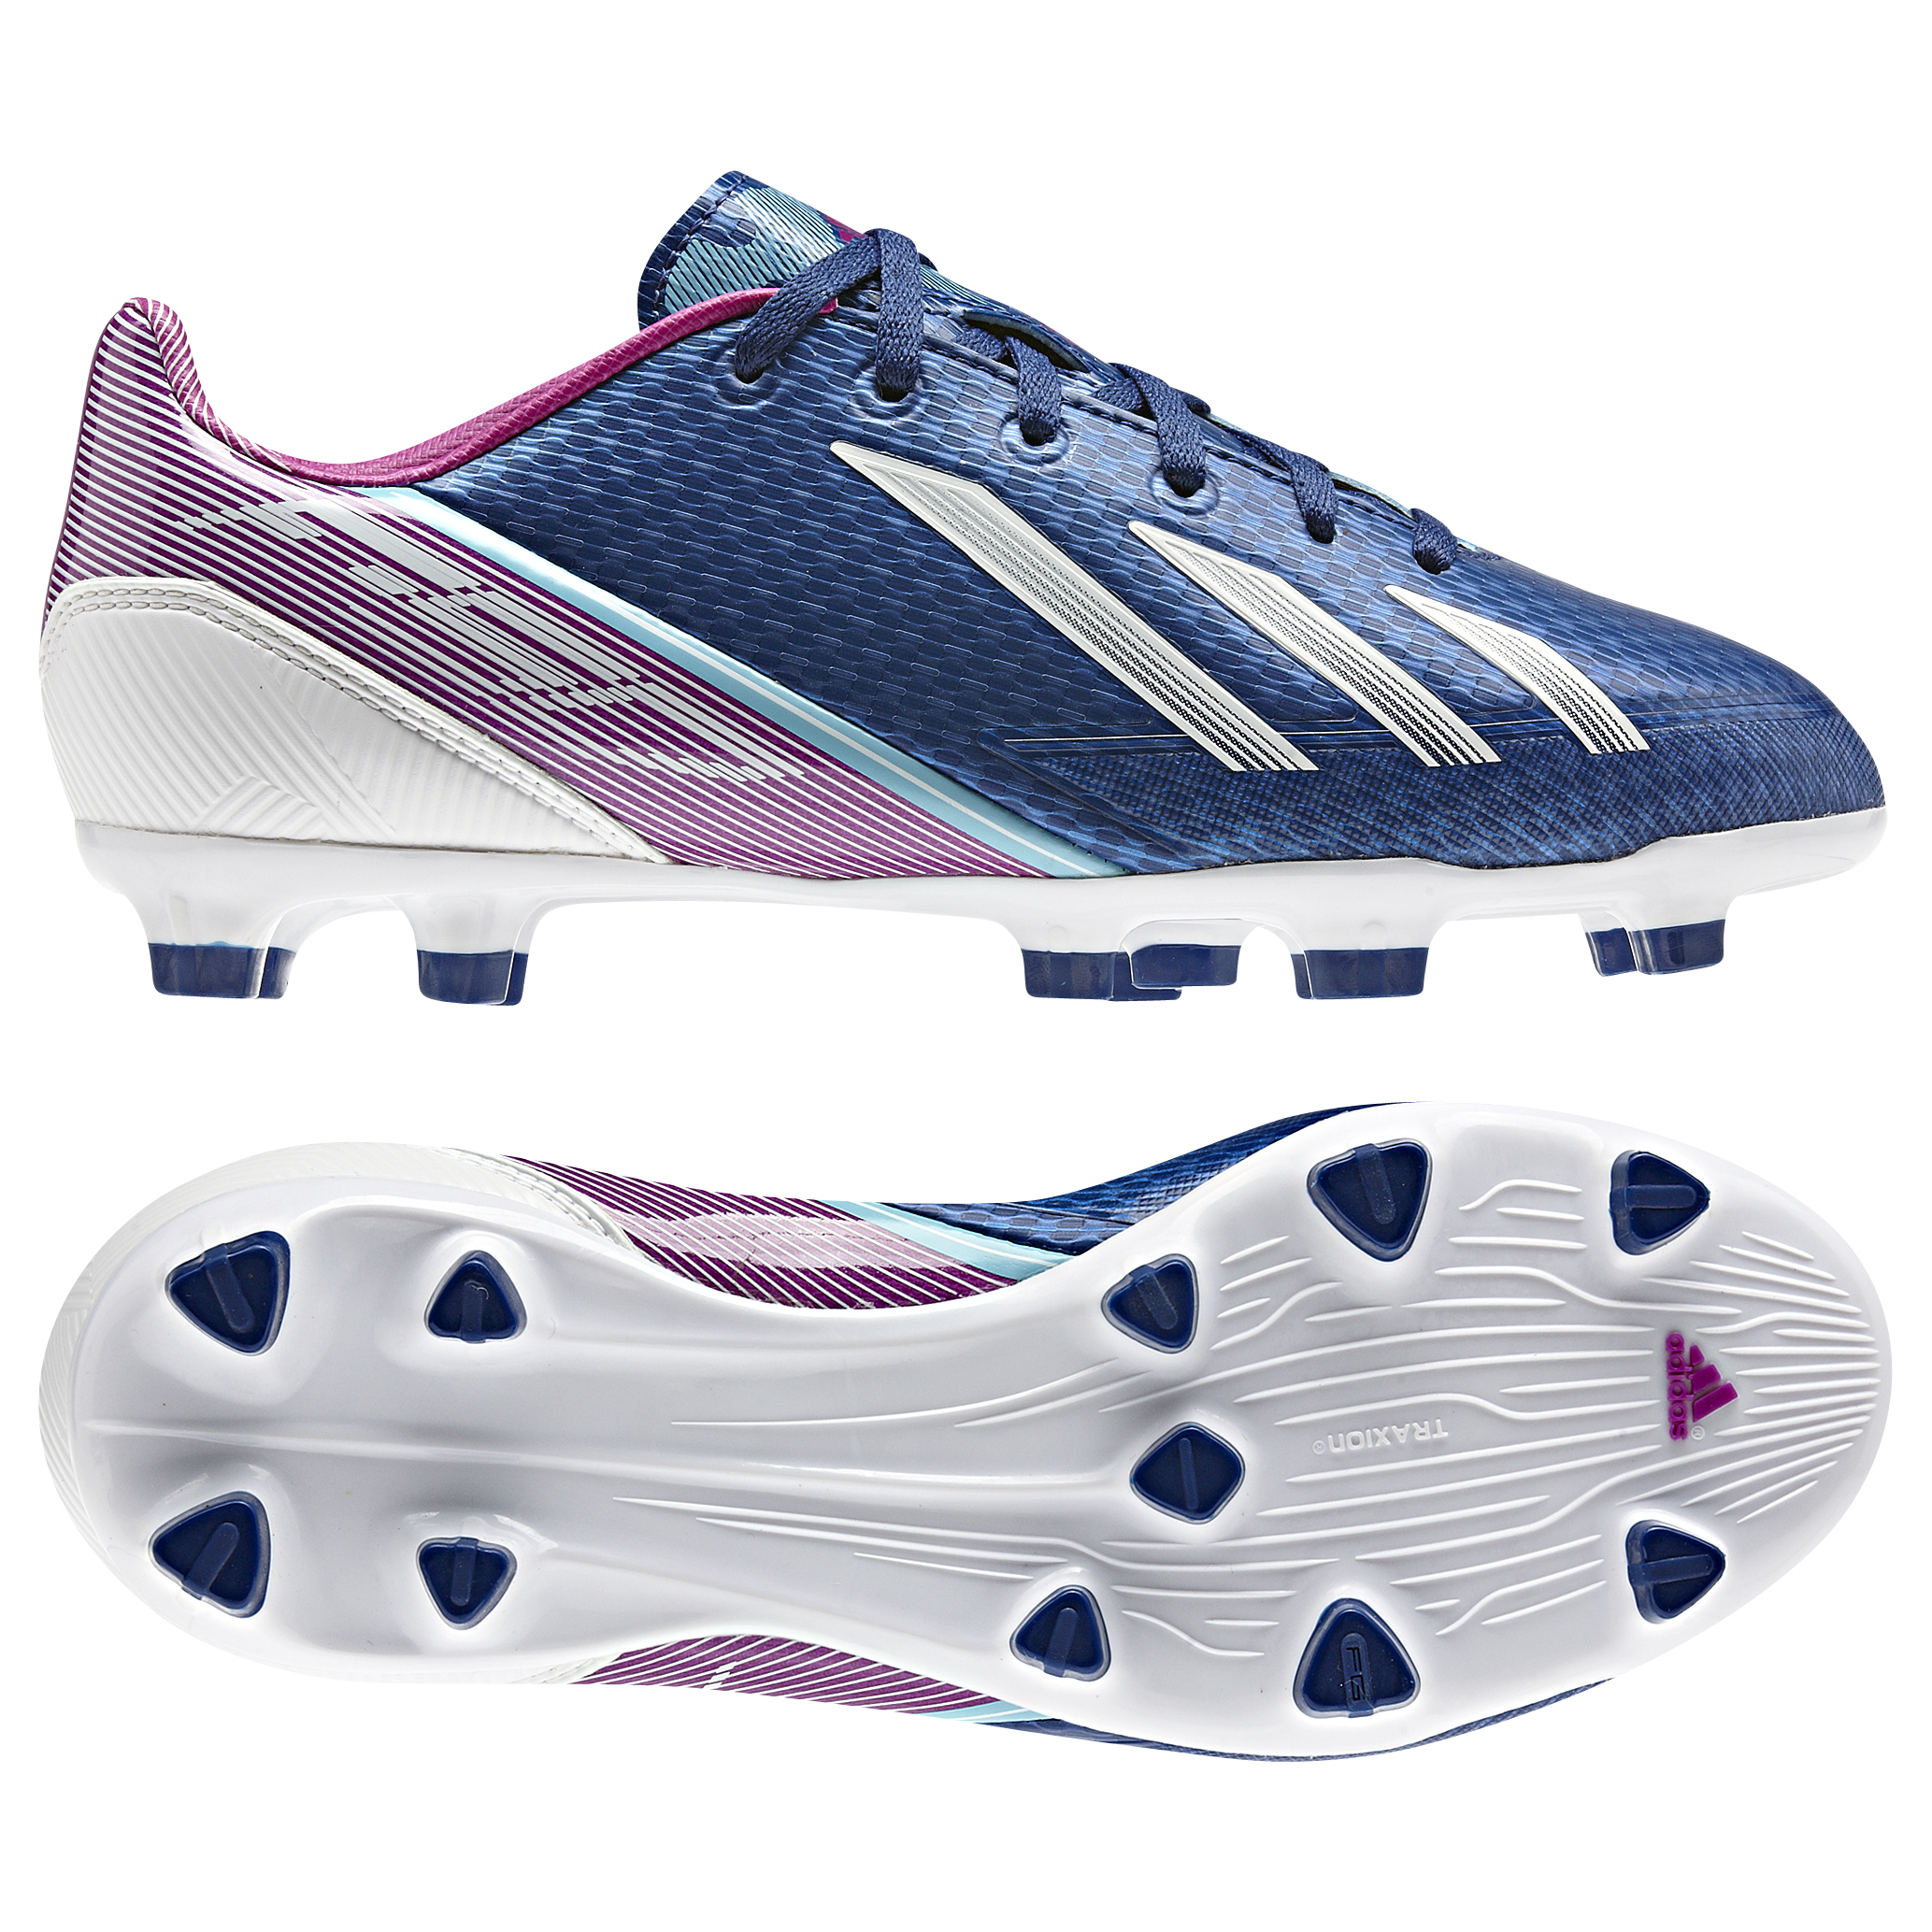 Adidas AdiZero F30 TRX Firm Ground Football Boots - Dark Blue/White/Vivid Pink - Kids